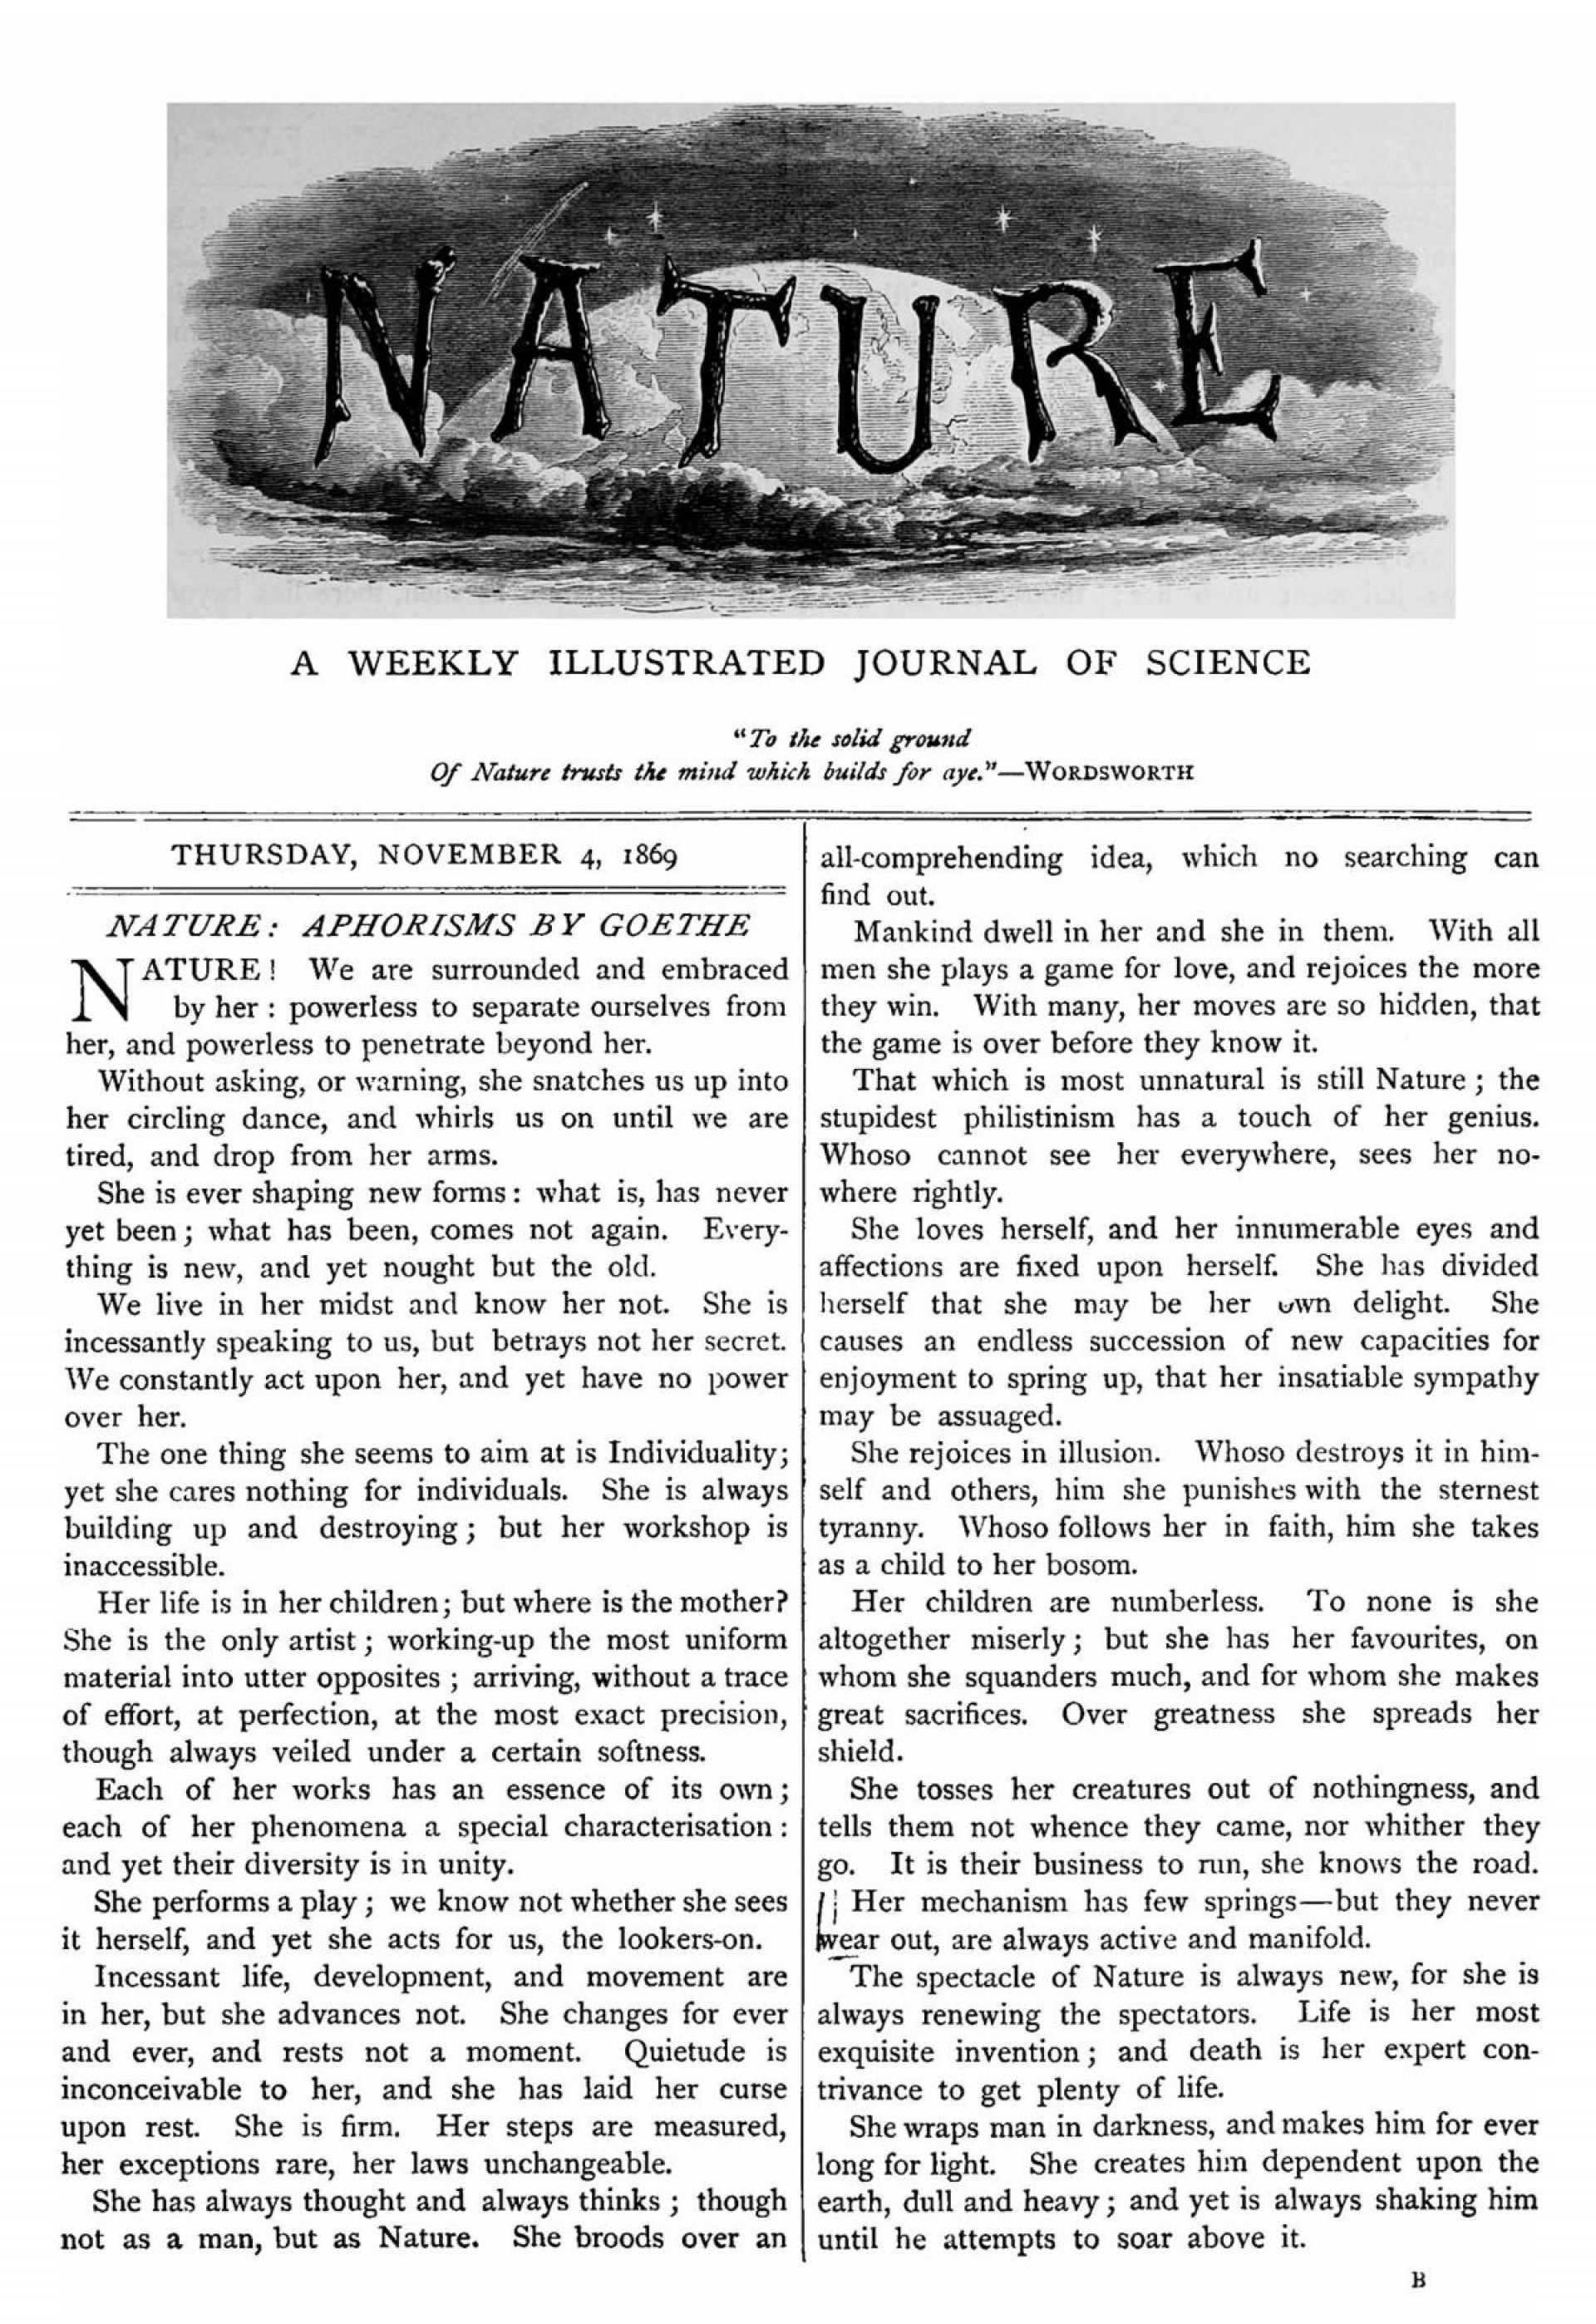 013 1200px Nature Cover2c November 42c 1869 Research Paper Best Journals To Publish Stunning Papers In Computer Science List Of 1920